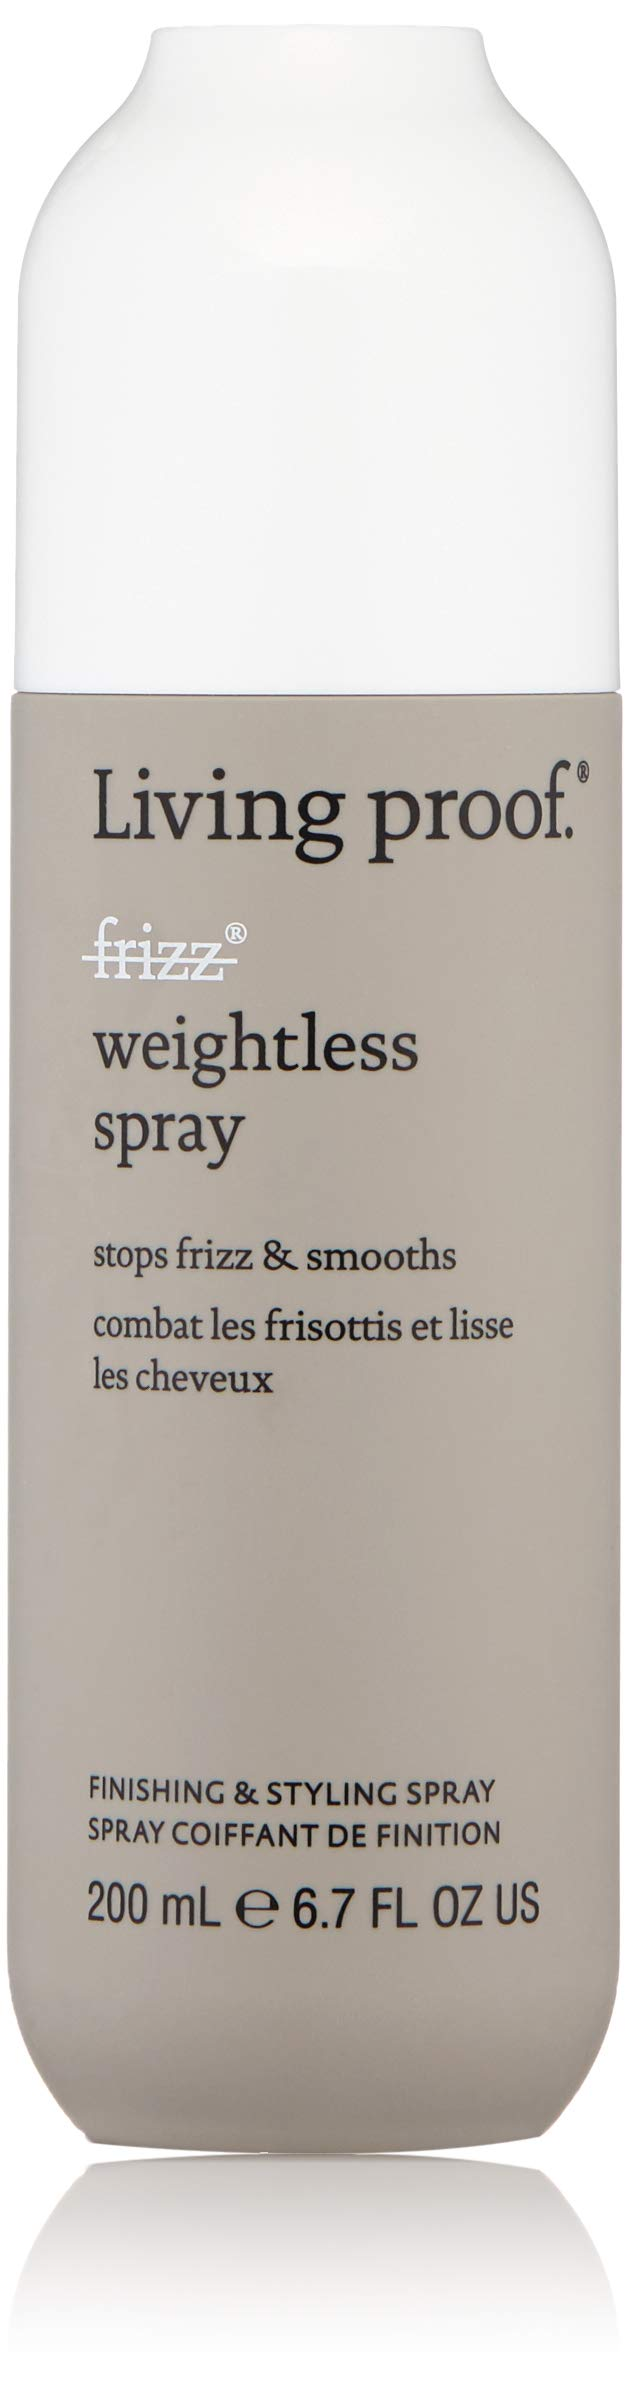 Living Proof No Frizz Weightless Styling Spray, 6.7 oz by Living Proof